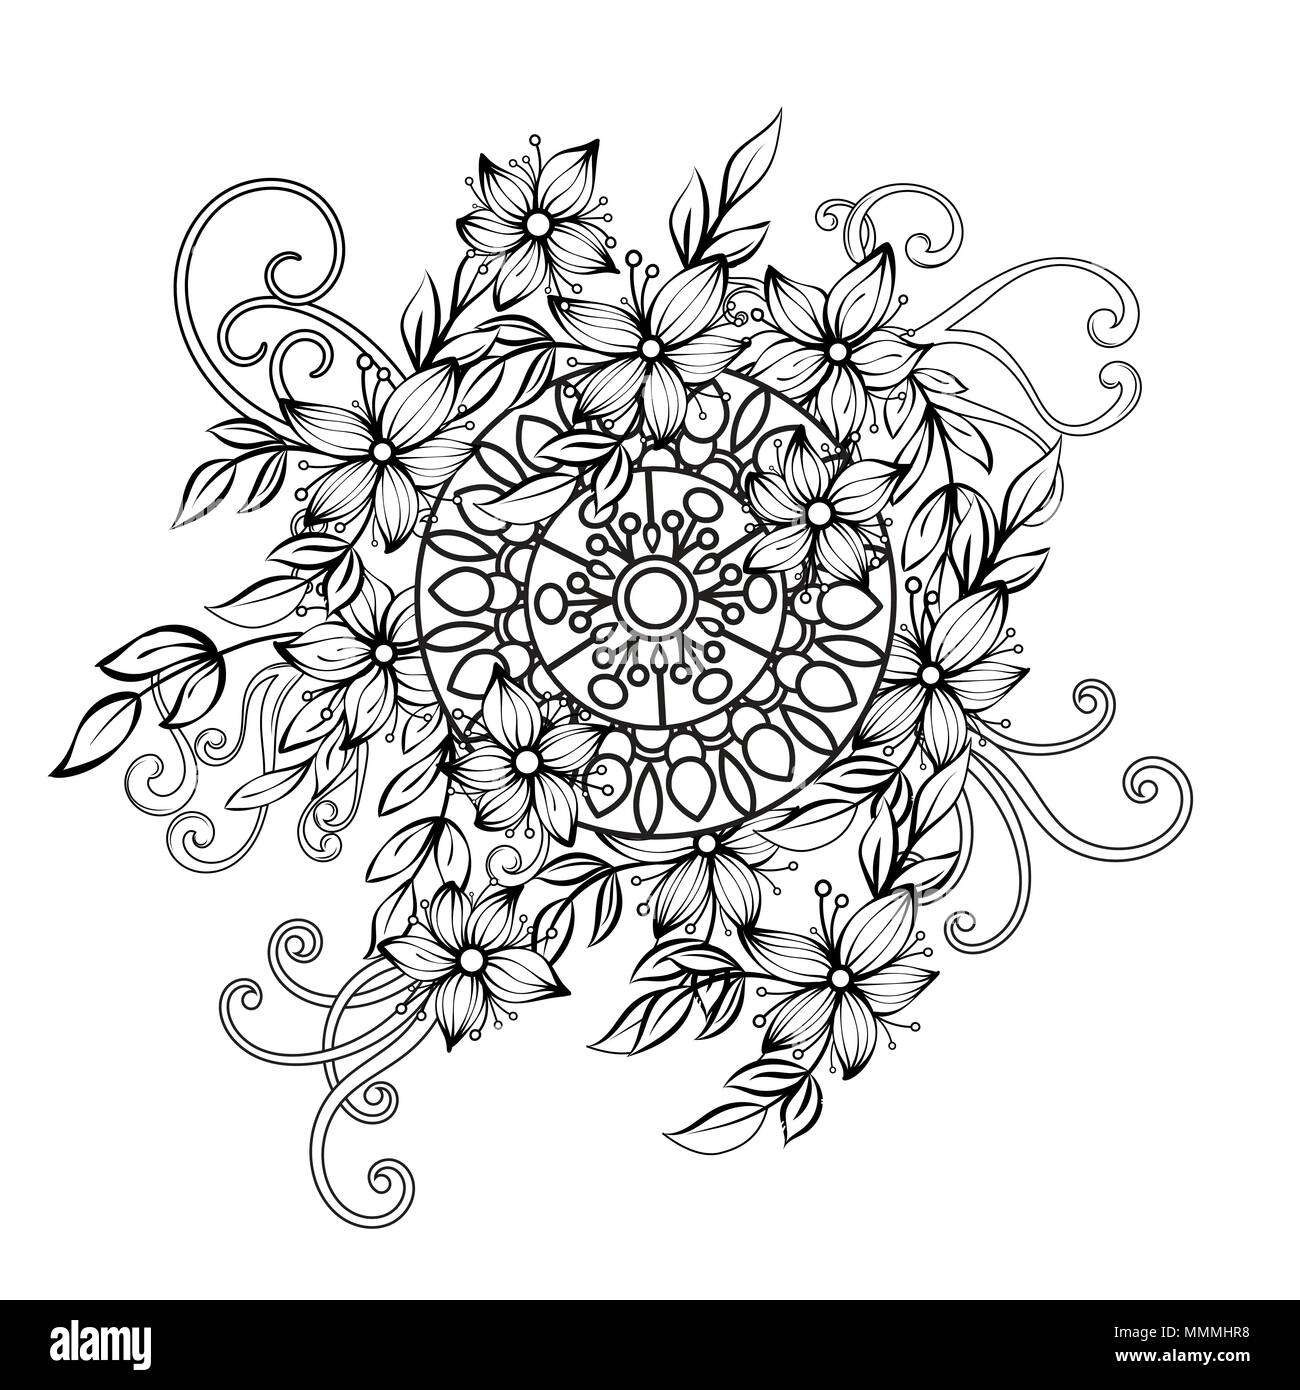 Floral pattern in black and white color. Adult coloring book page with flowers and mandala. Art therapy, anti stress coloring page. Hand drawn vector illustration - Stock Image